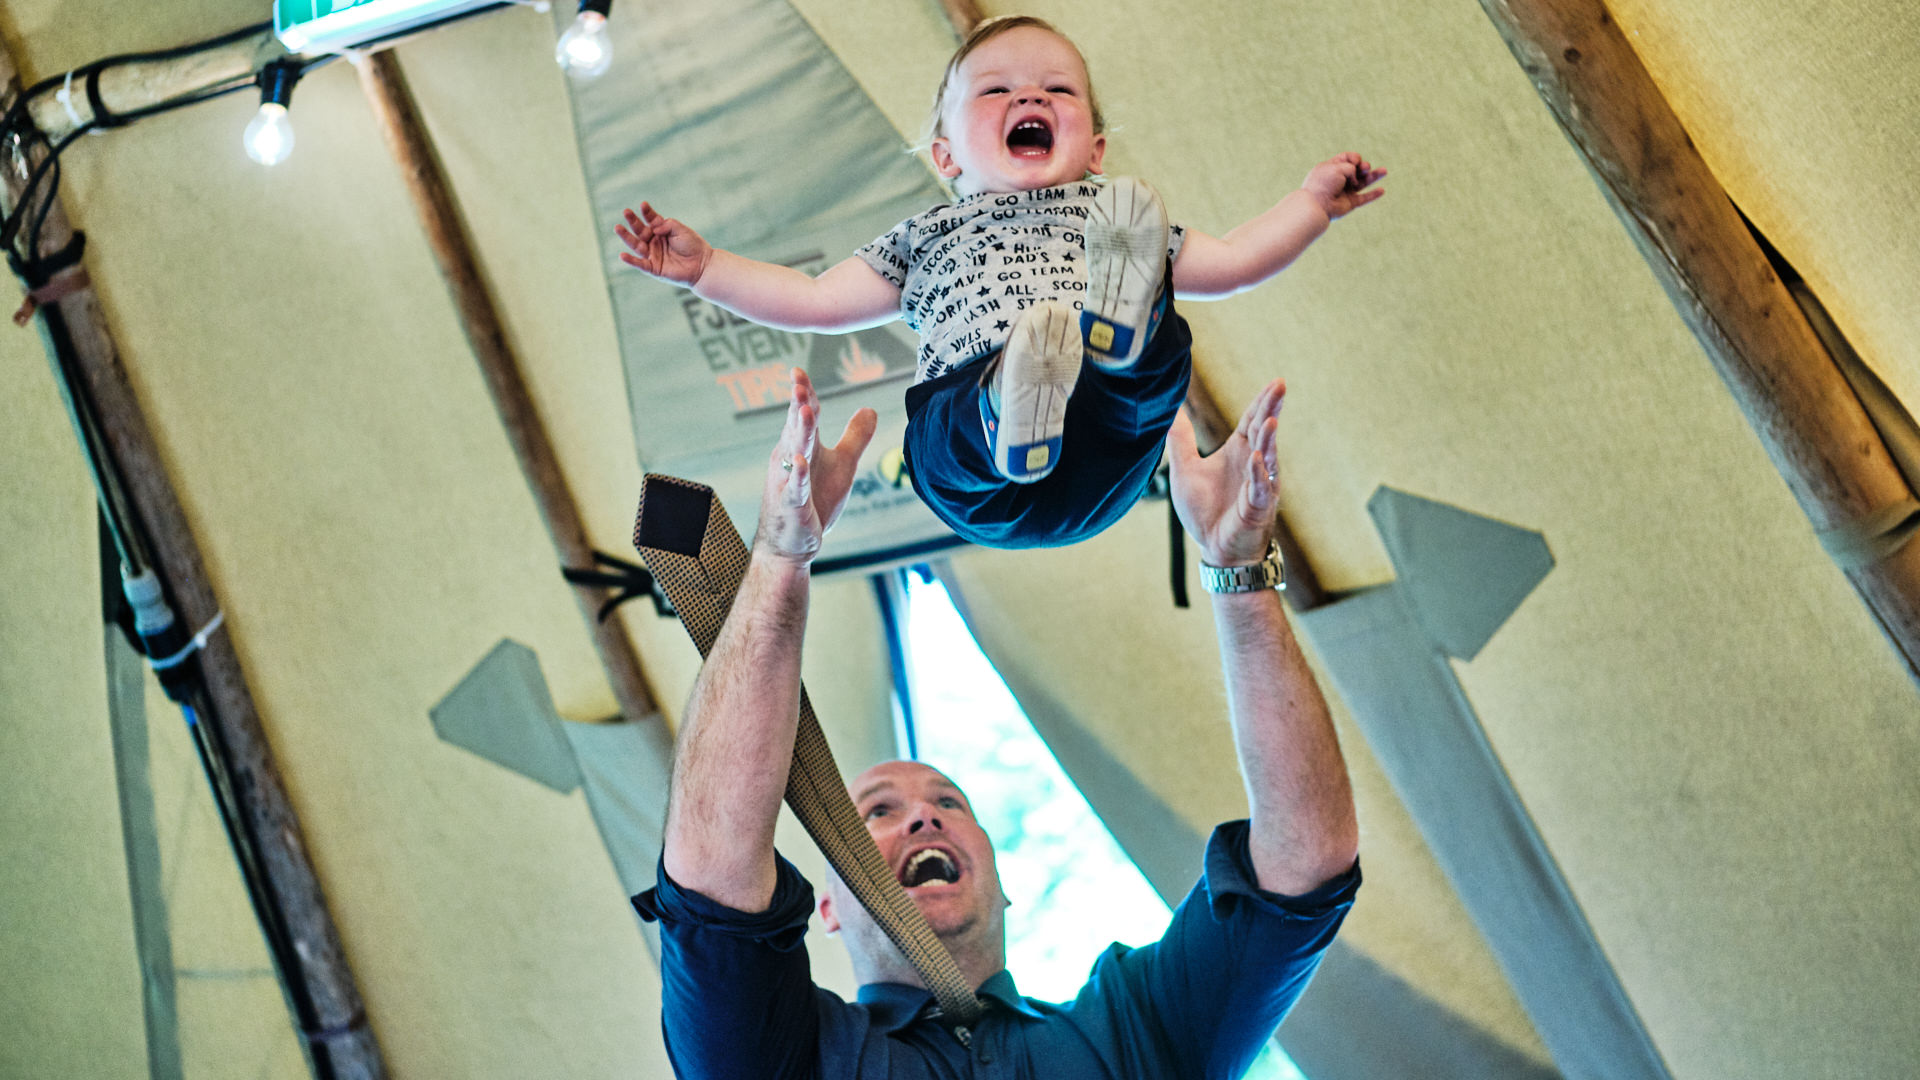 colour photograph of a wedding guest throwing his baby son in the air during a wedding reception